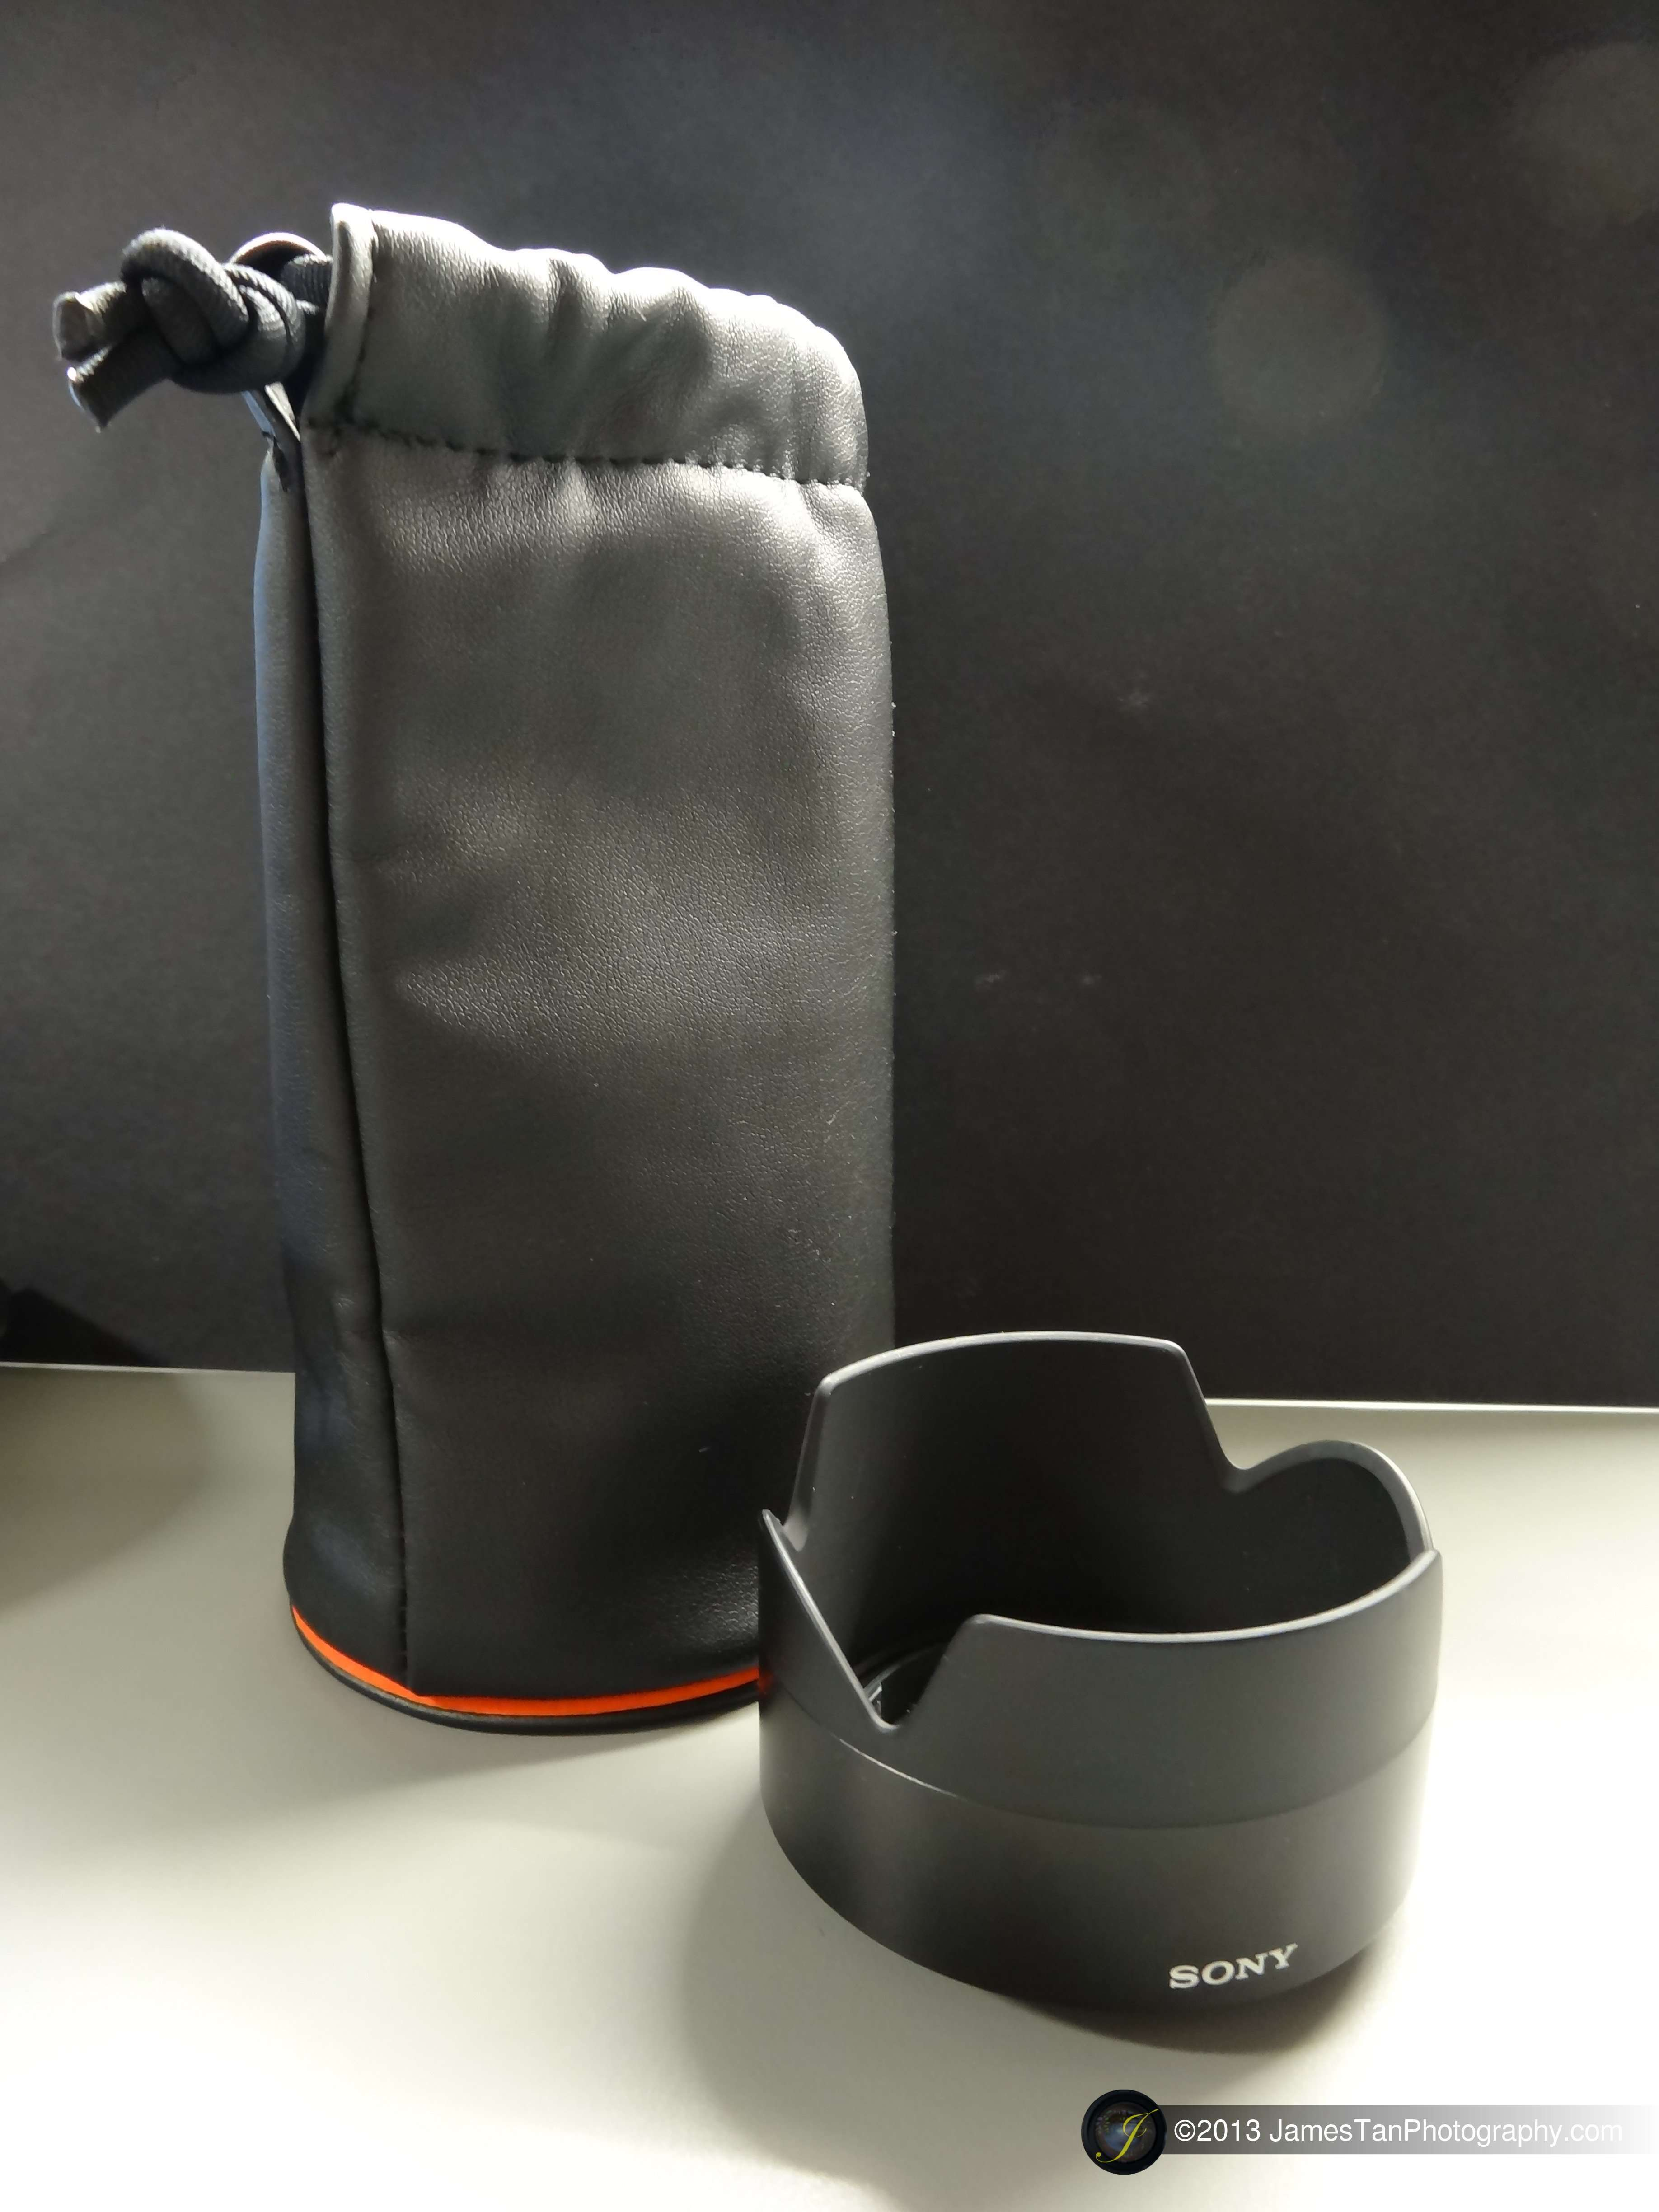 The Pleather Pouch and the Plastic Lens Hood